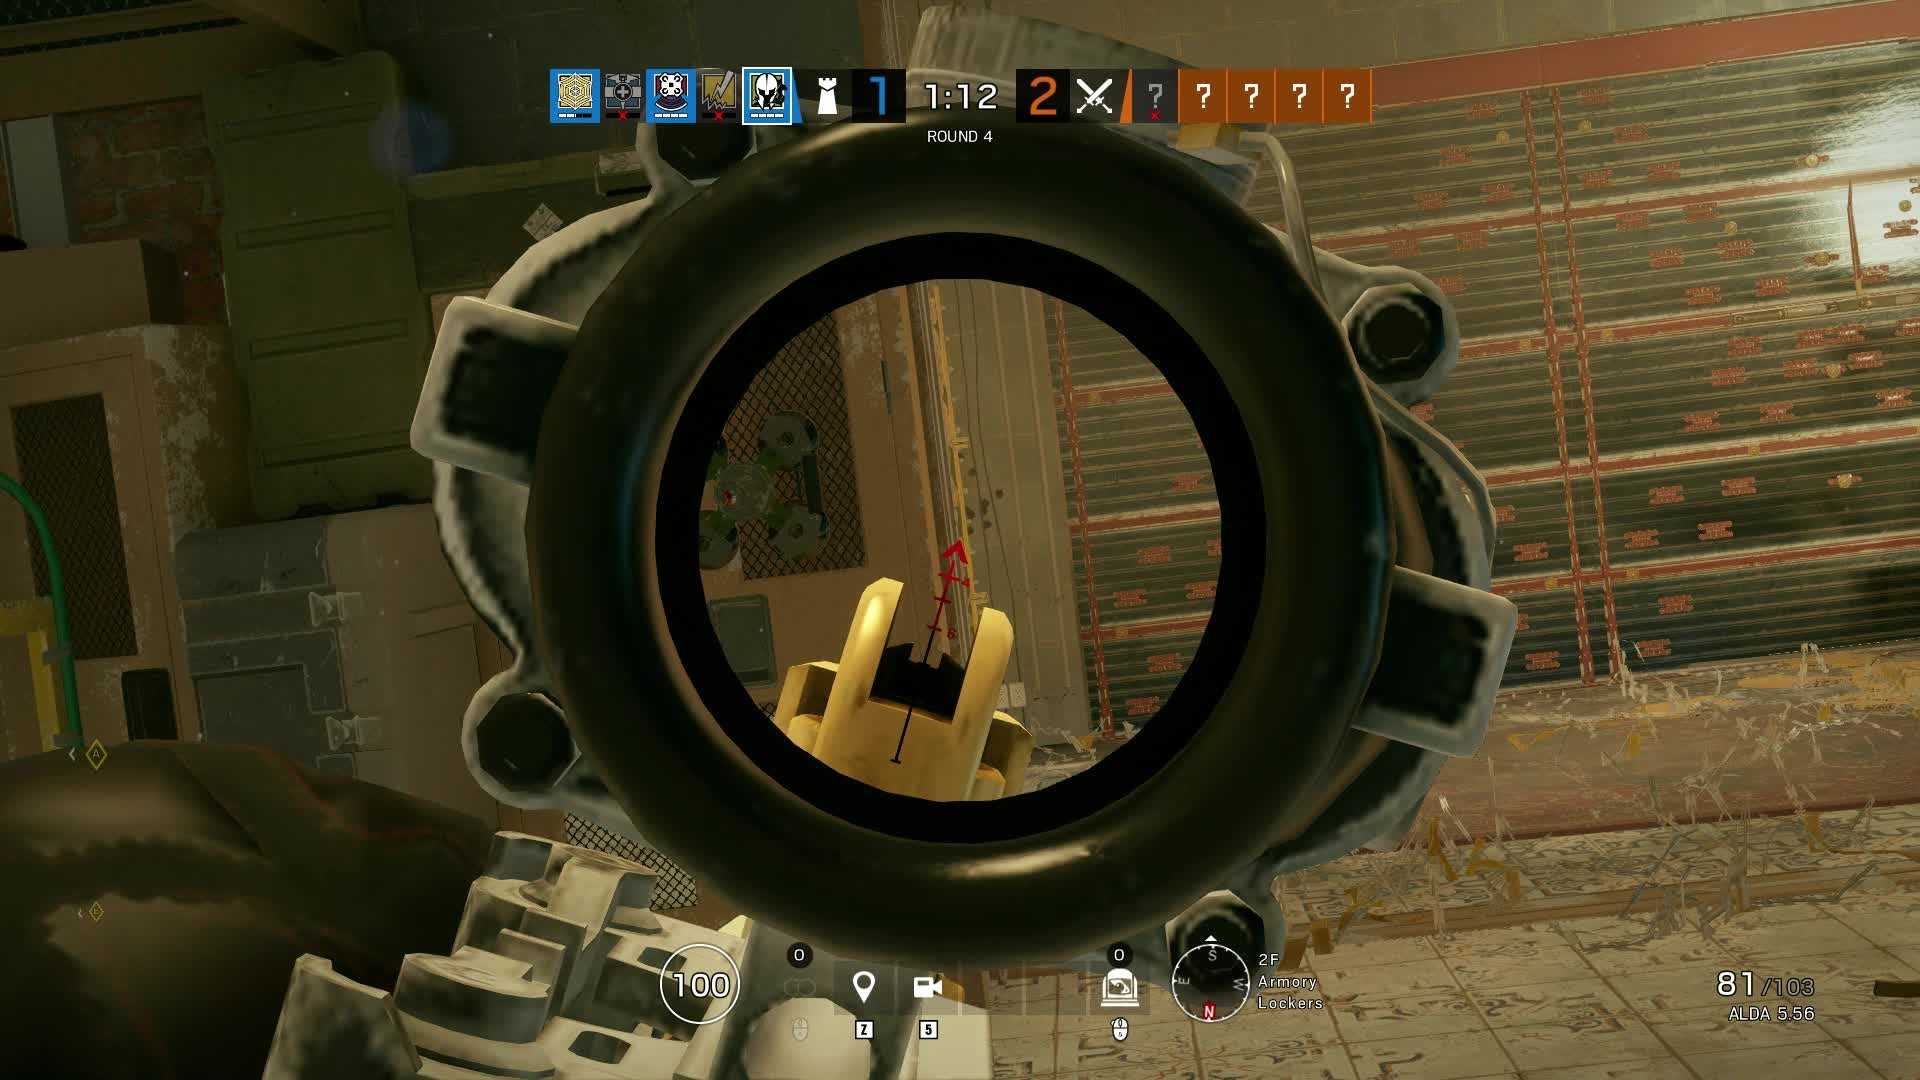 Rainbow Six: Promotions - 7 Second 1v4 Maestro Clutch [PC/Diamond] video cover image 1